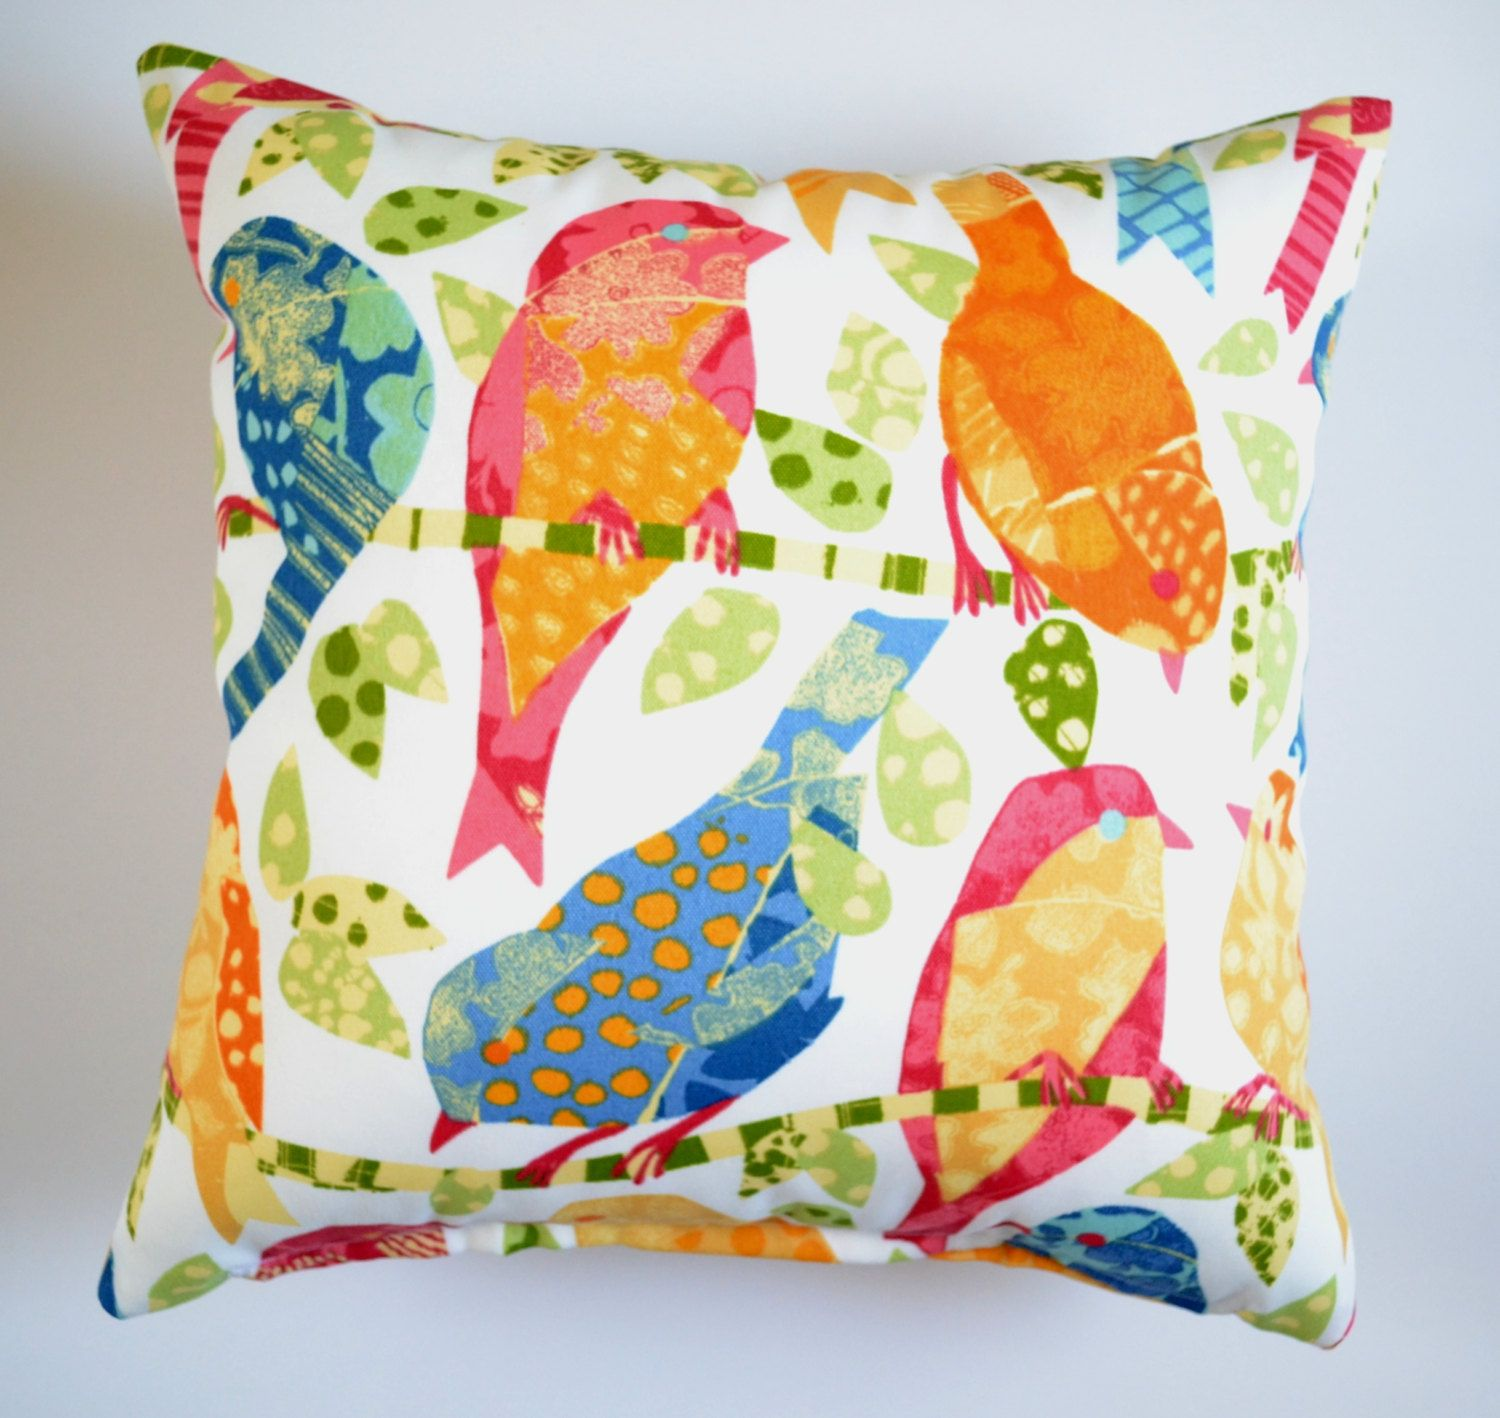 Bird Hangout Outdoor Indoor Cushion Cover Sun Soil Water Stain Resistant Multi Coloured Throw Pillow Scatter Cushion Birds Nature Outdoor Cushion Covers Throw Pillows Deck Cushions